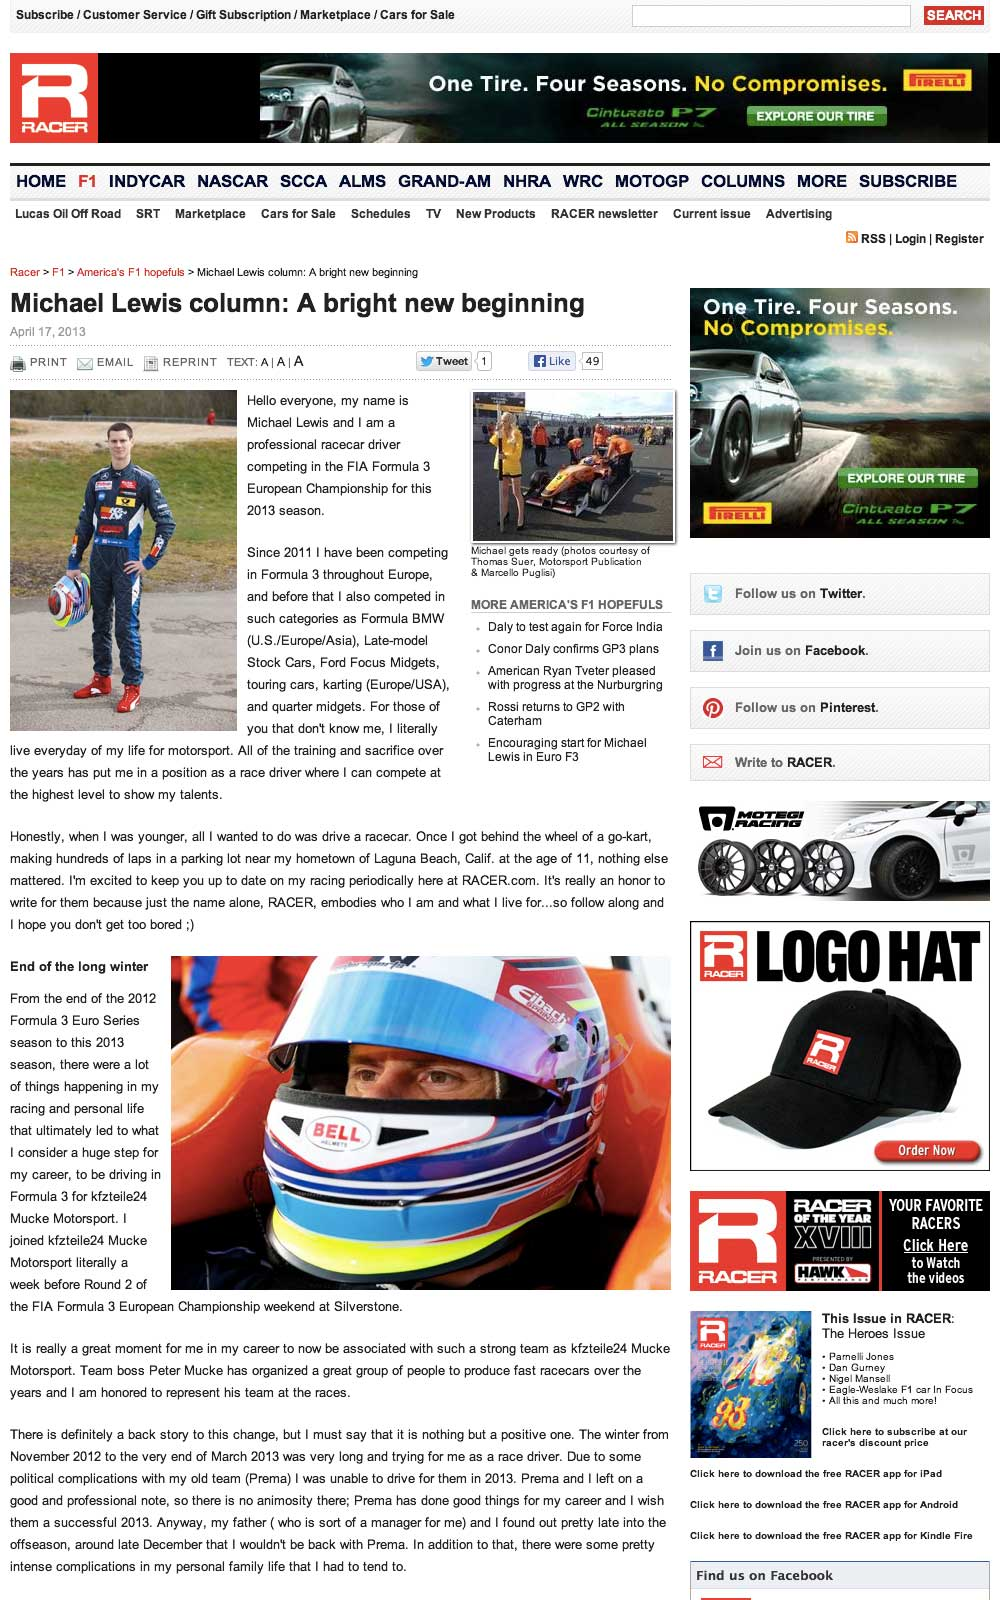 042913 Racer.comArticle lg